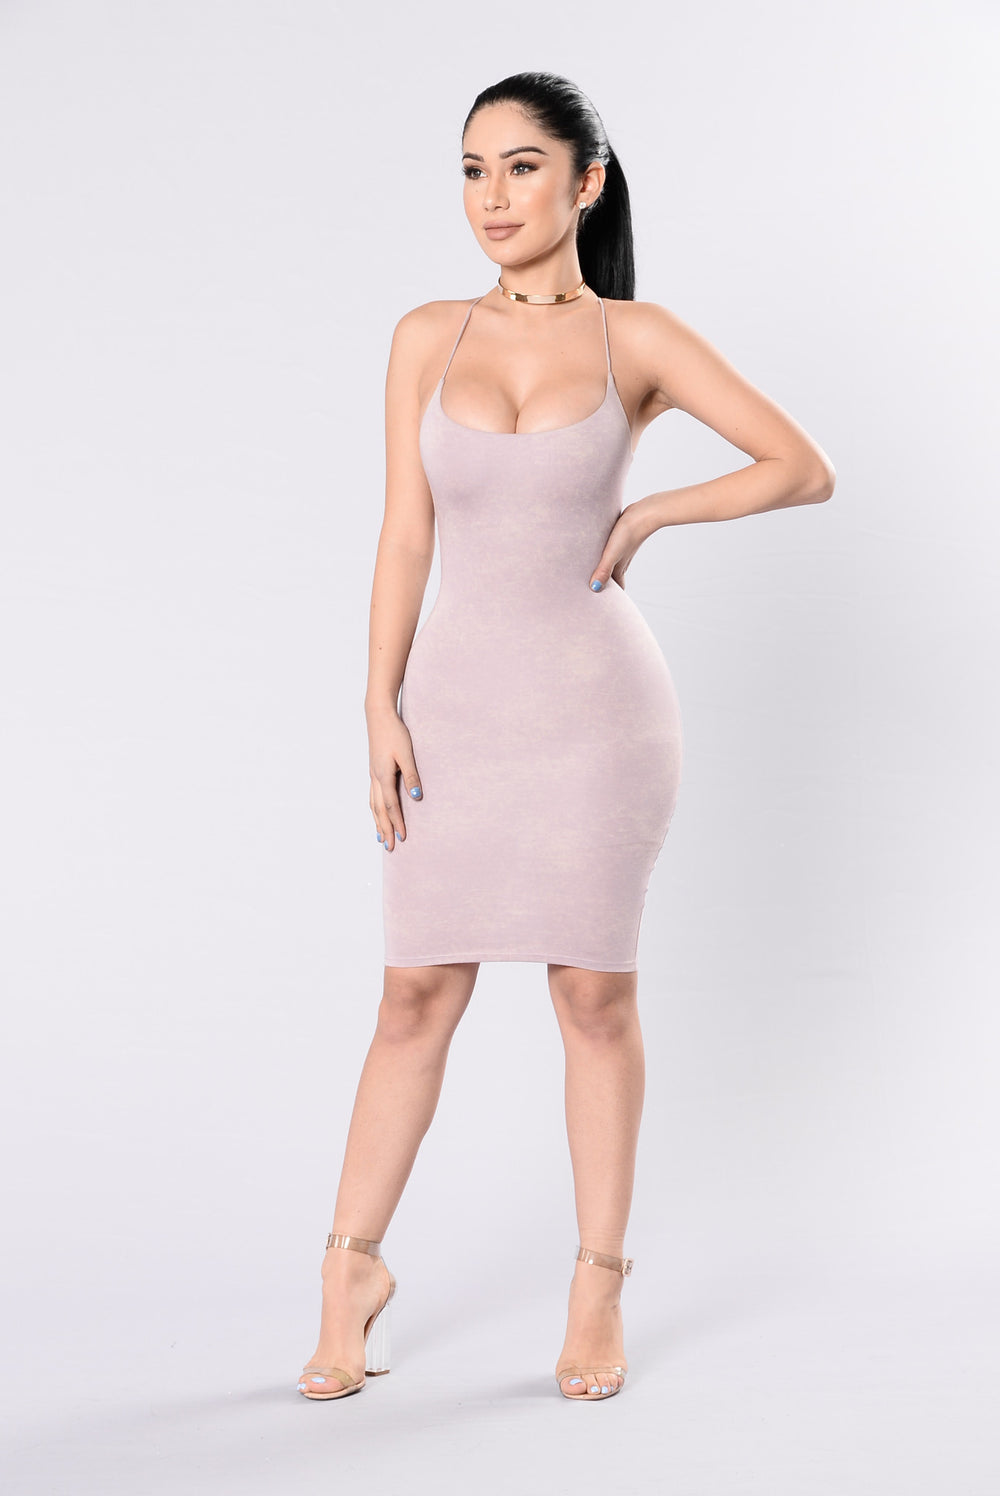 Walk My Way Dress - Mauve